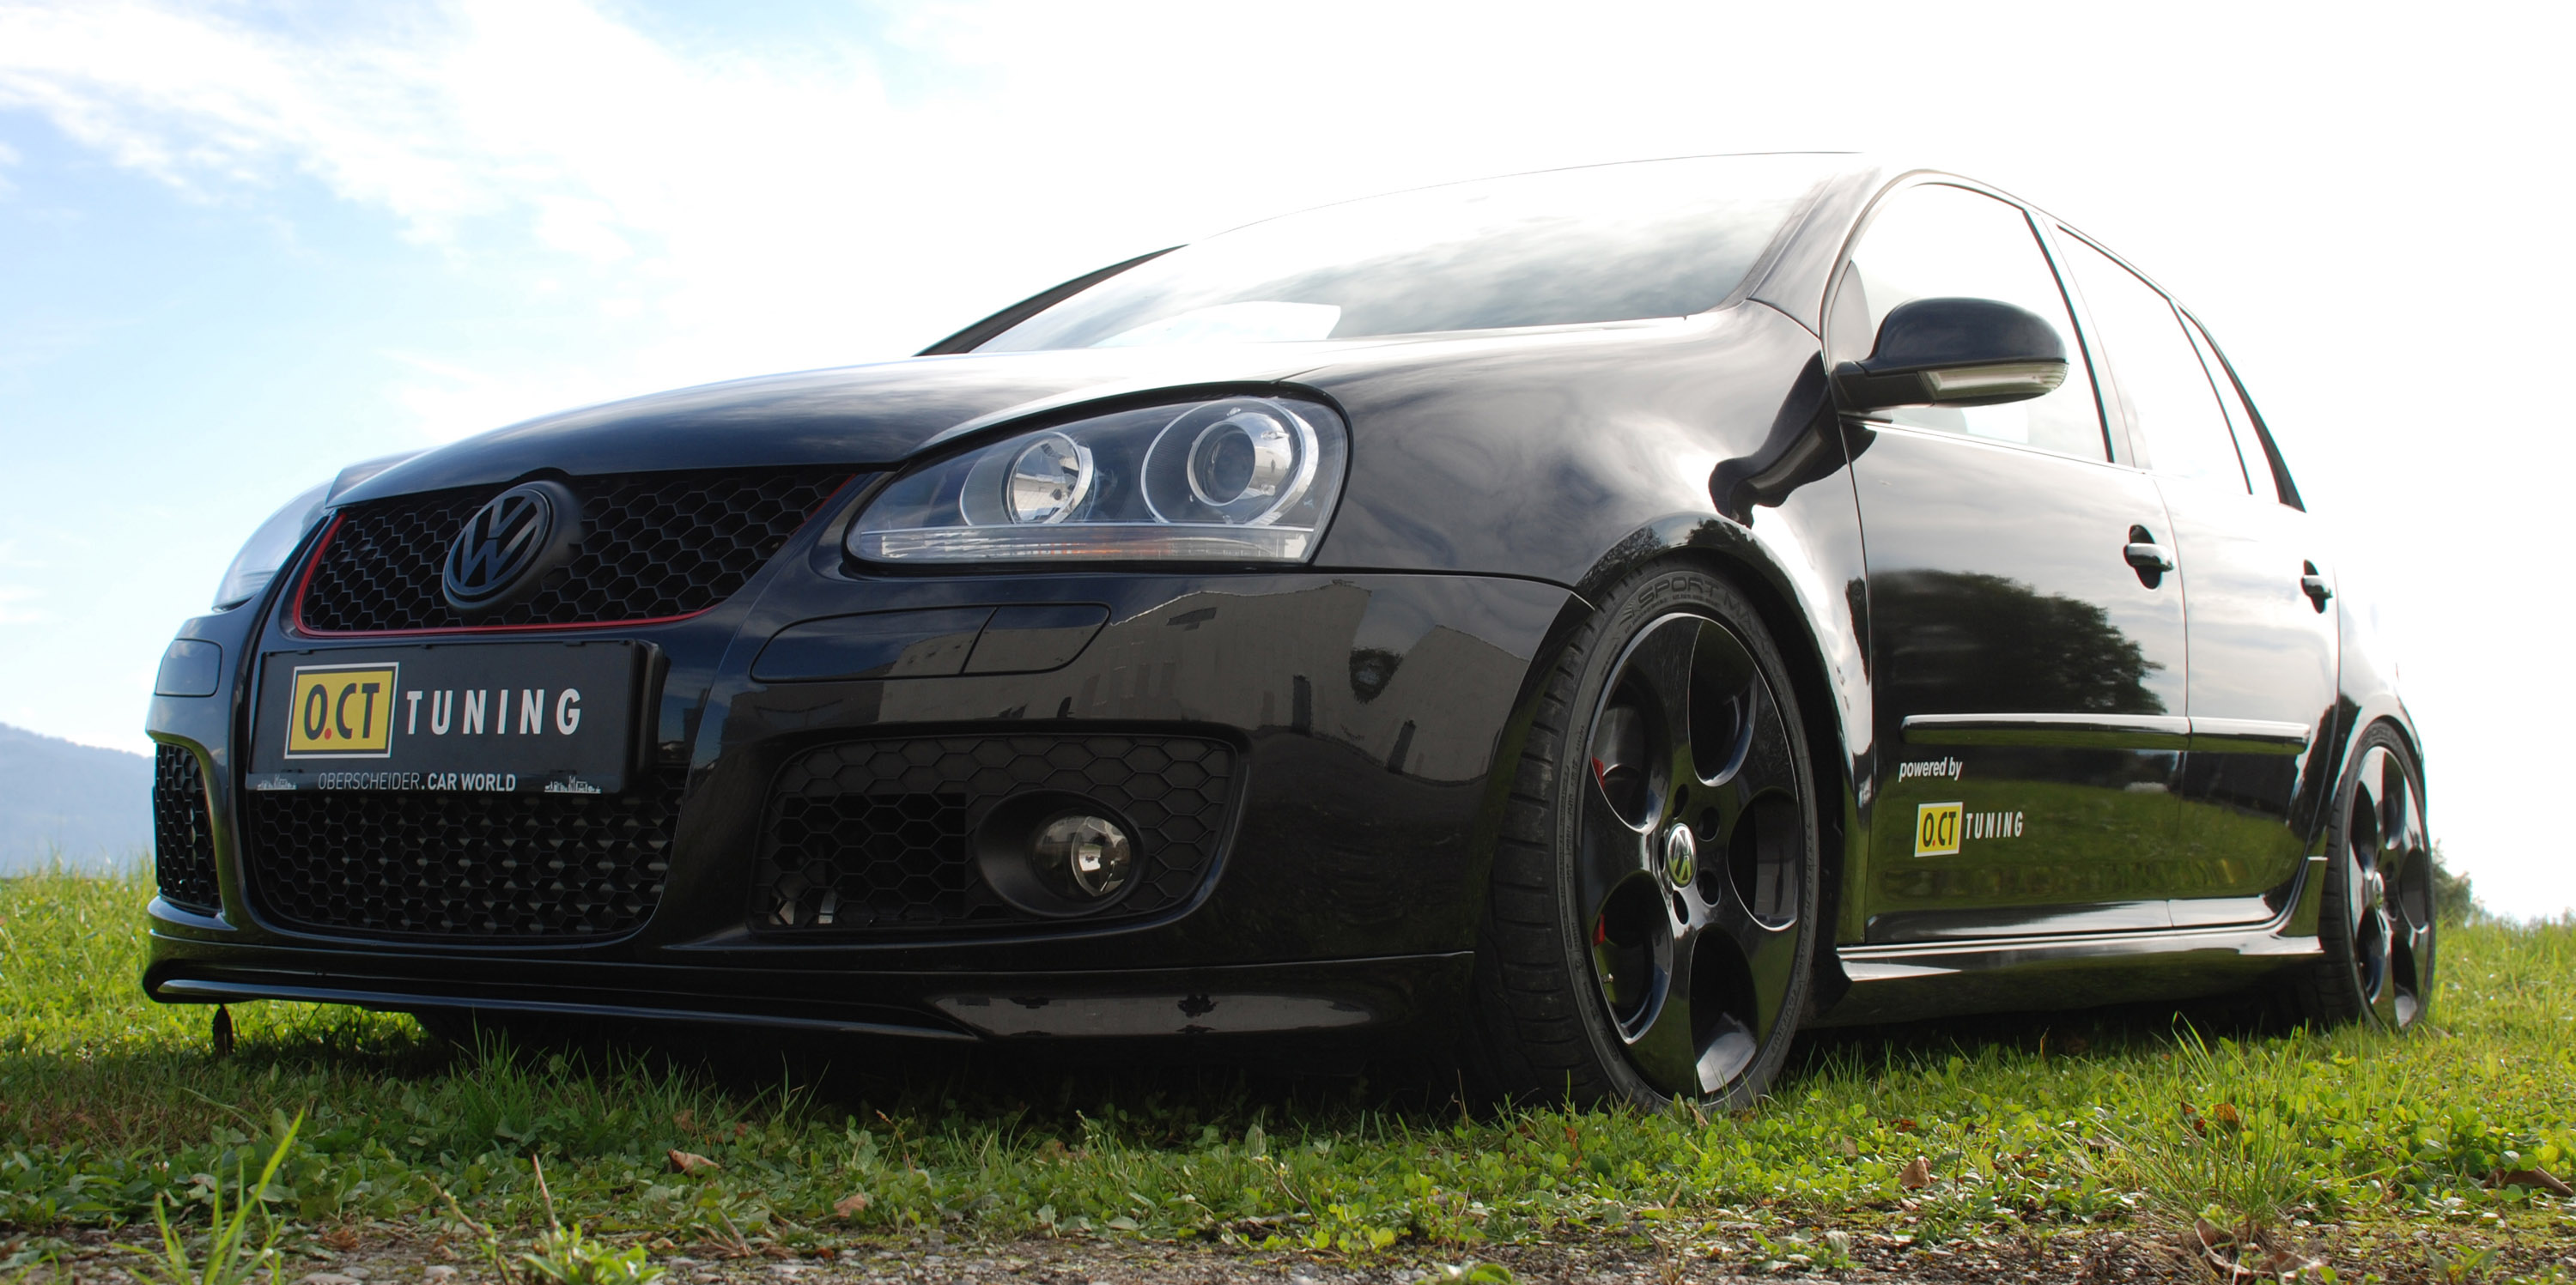 oct volkswagen golf v gti edition 30 picture 77342. Black Bedroom Furniture Sets. Home Design Ideas